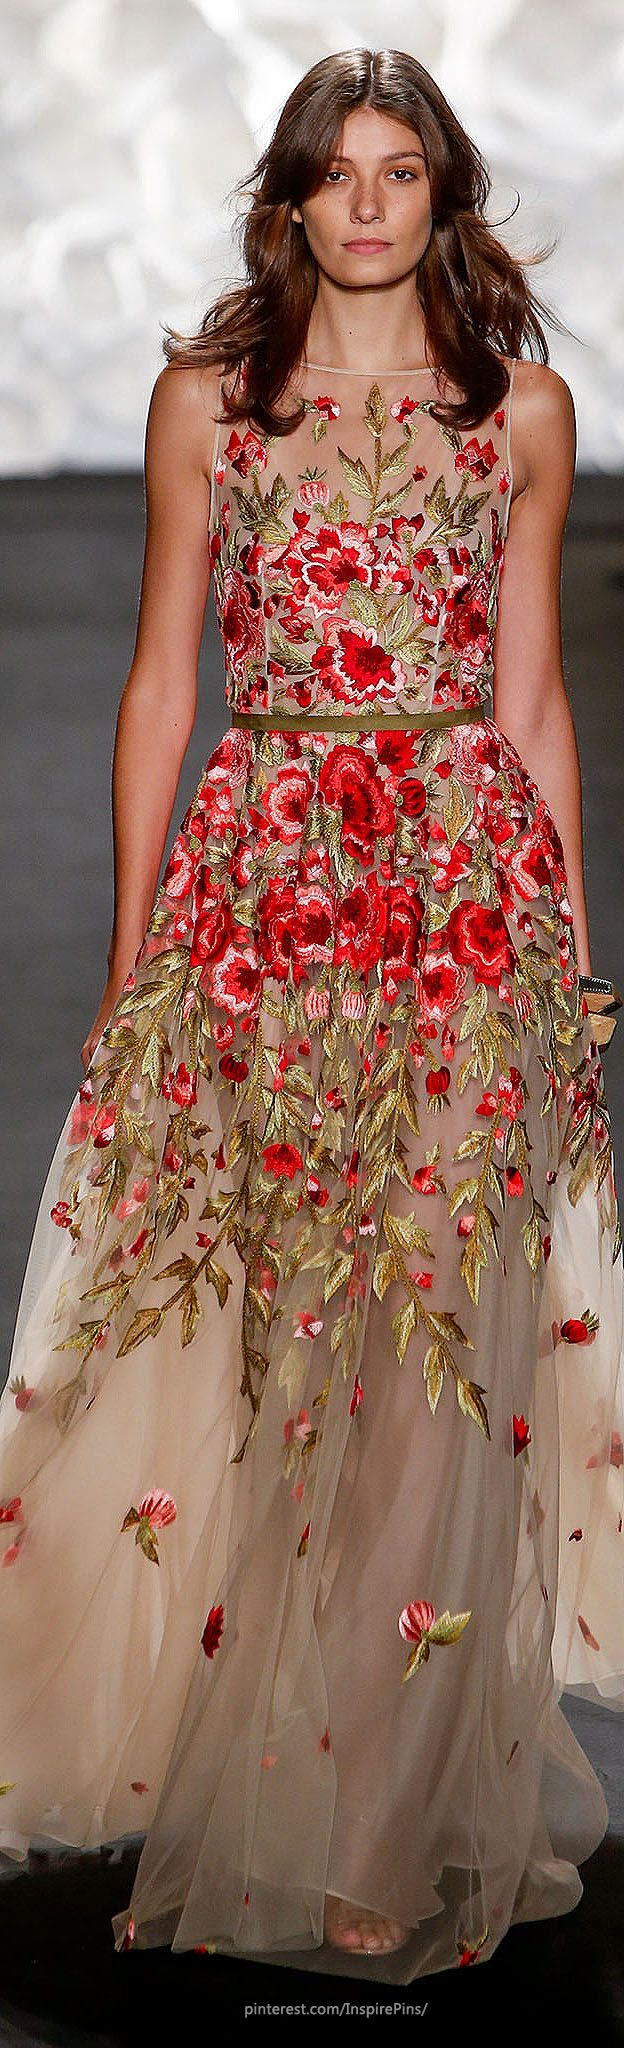 "Naeem Khan Spring 2015 Ready-to-Wear ♡♥♡♥ Thanks, Pinterest Pinners, for stopping by, viewing, re-pinning, & following my boards. Have a beautiful day! ^..^ and ""Feel free to share on Pinterest ^..^#topfashion #fashionandclothingblog *•.¸♡¸.•**•.¸ ┊ ┊ ┊ ┊ ┊ ┊"